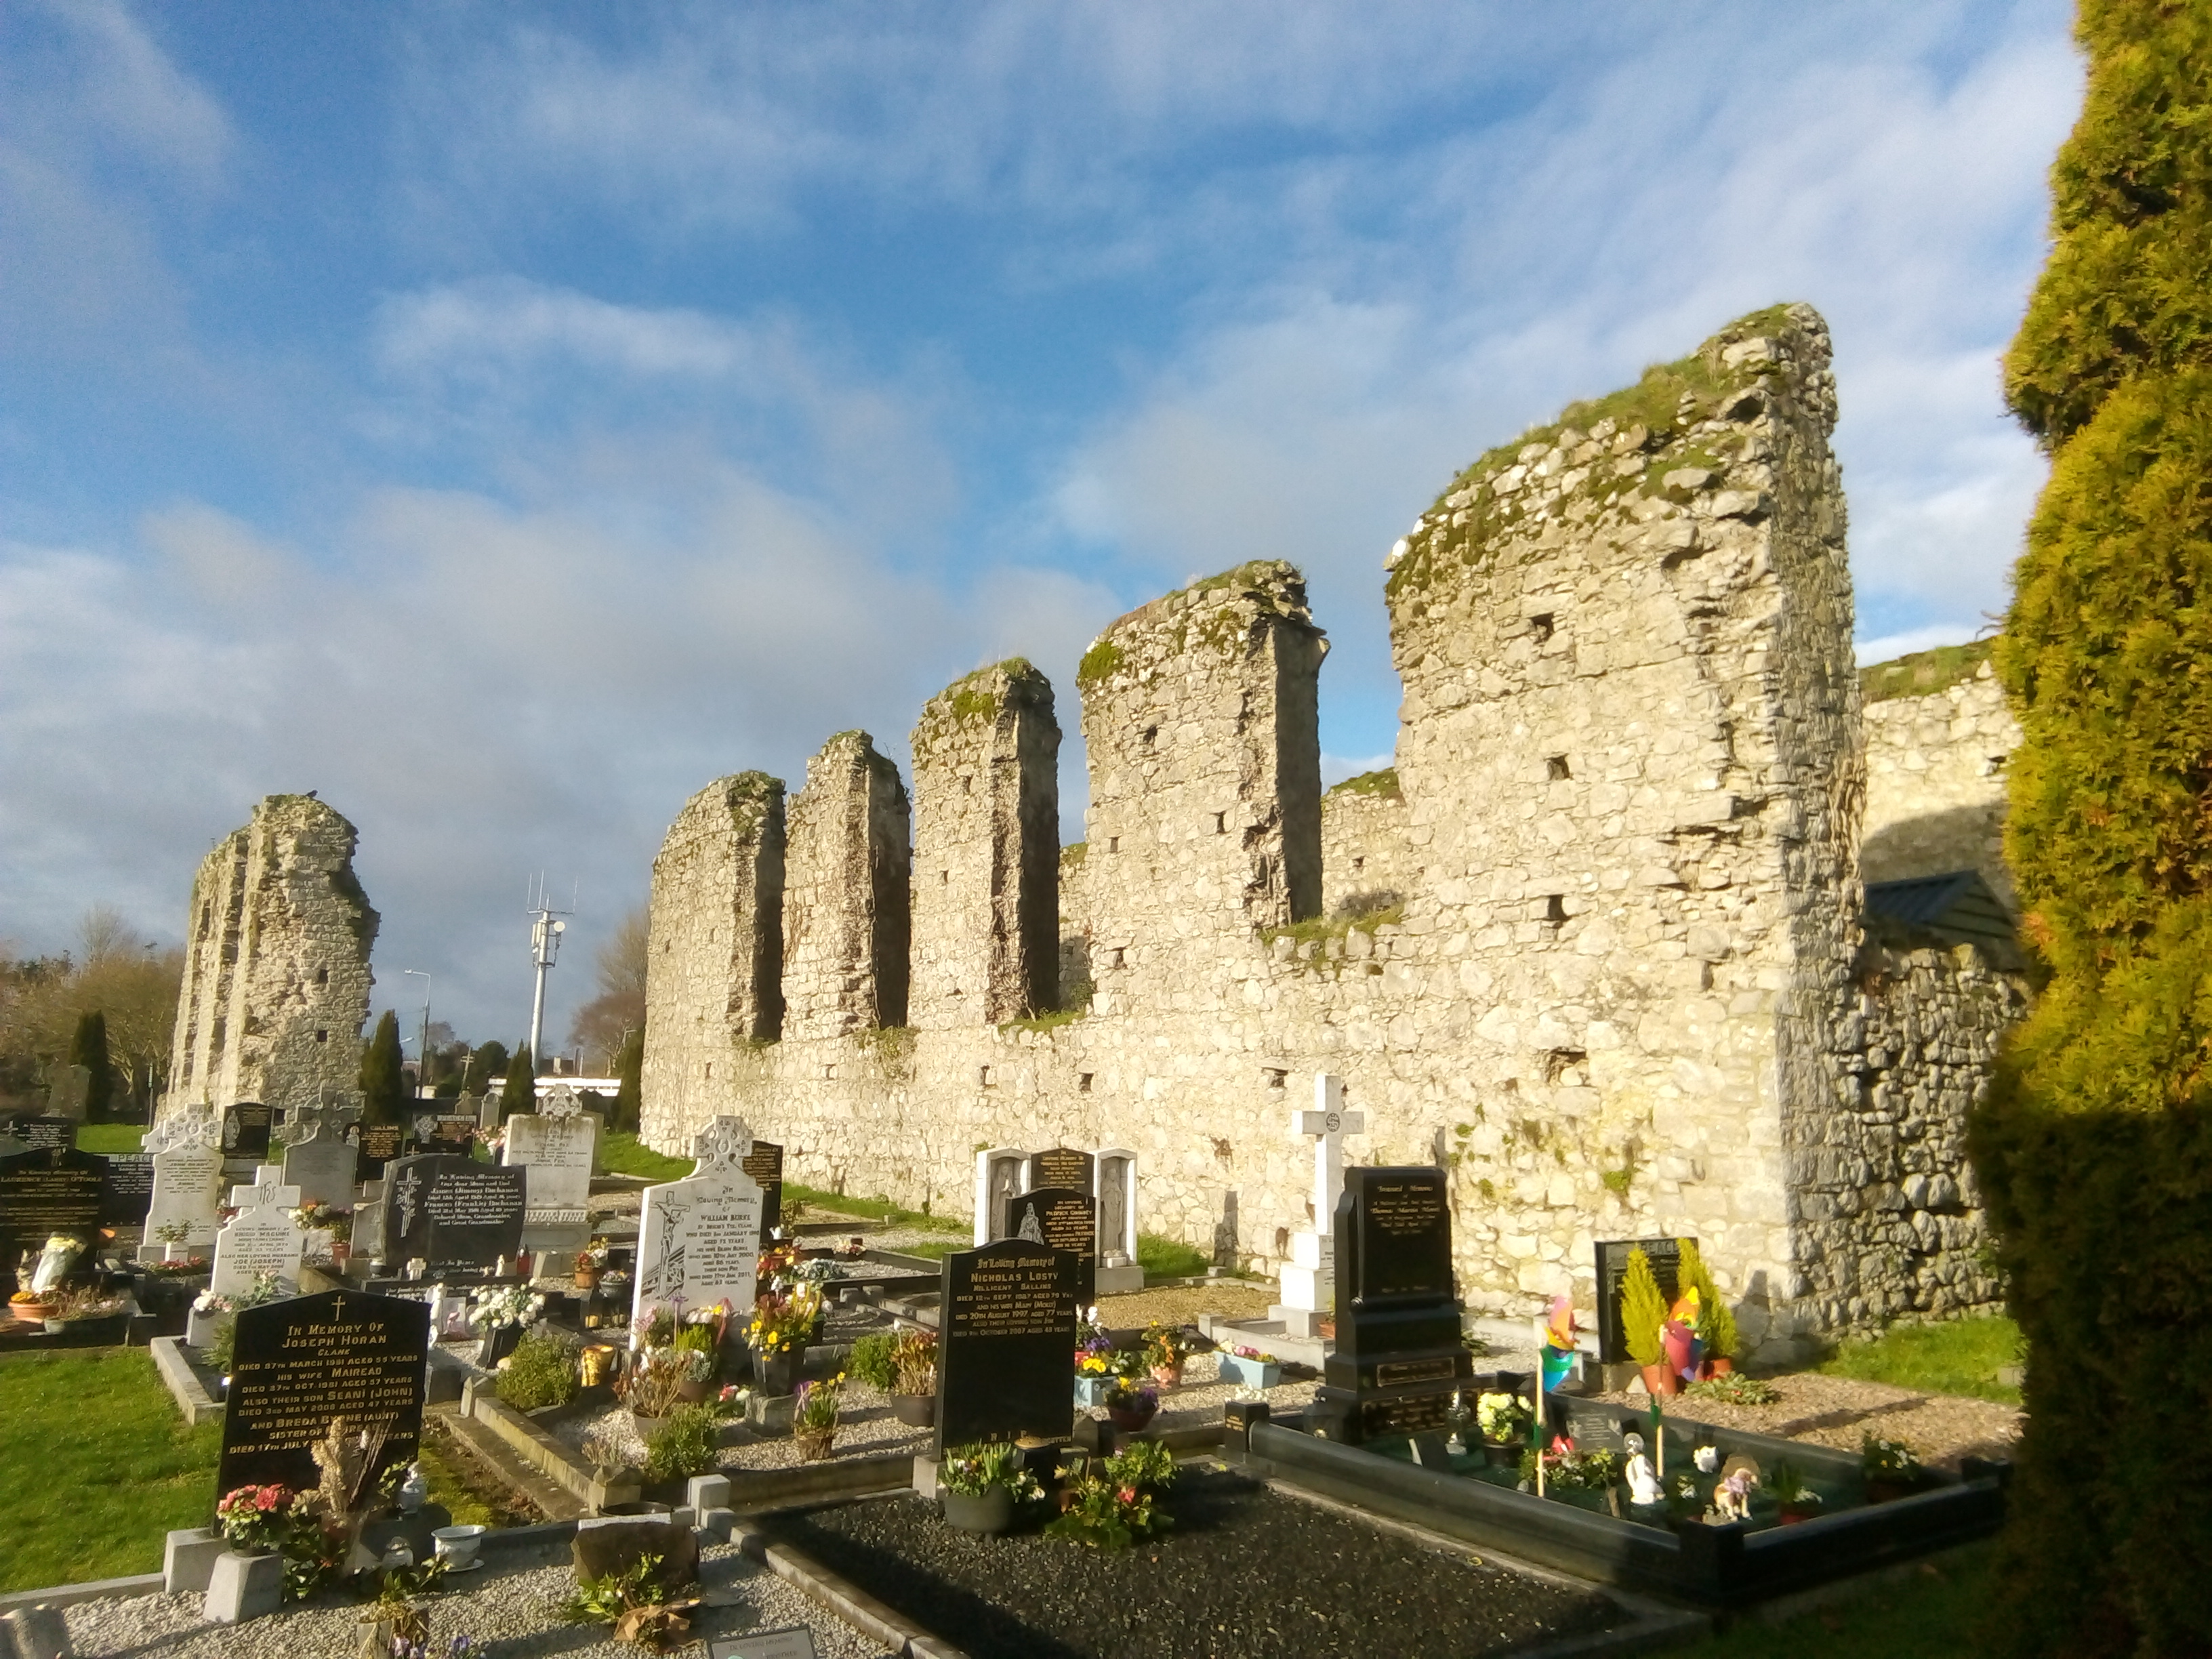 Short Historical Note On Clane - Clane Festival